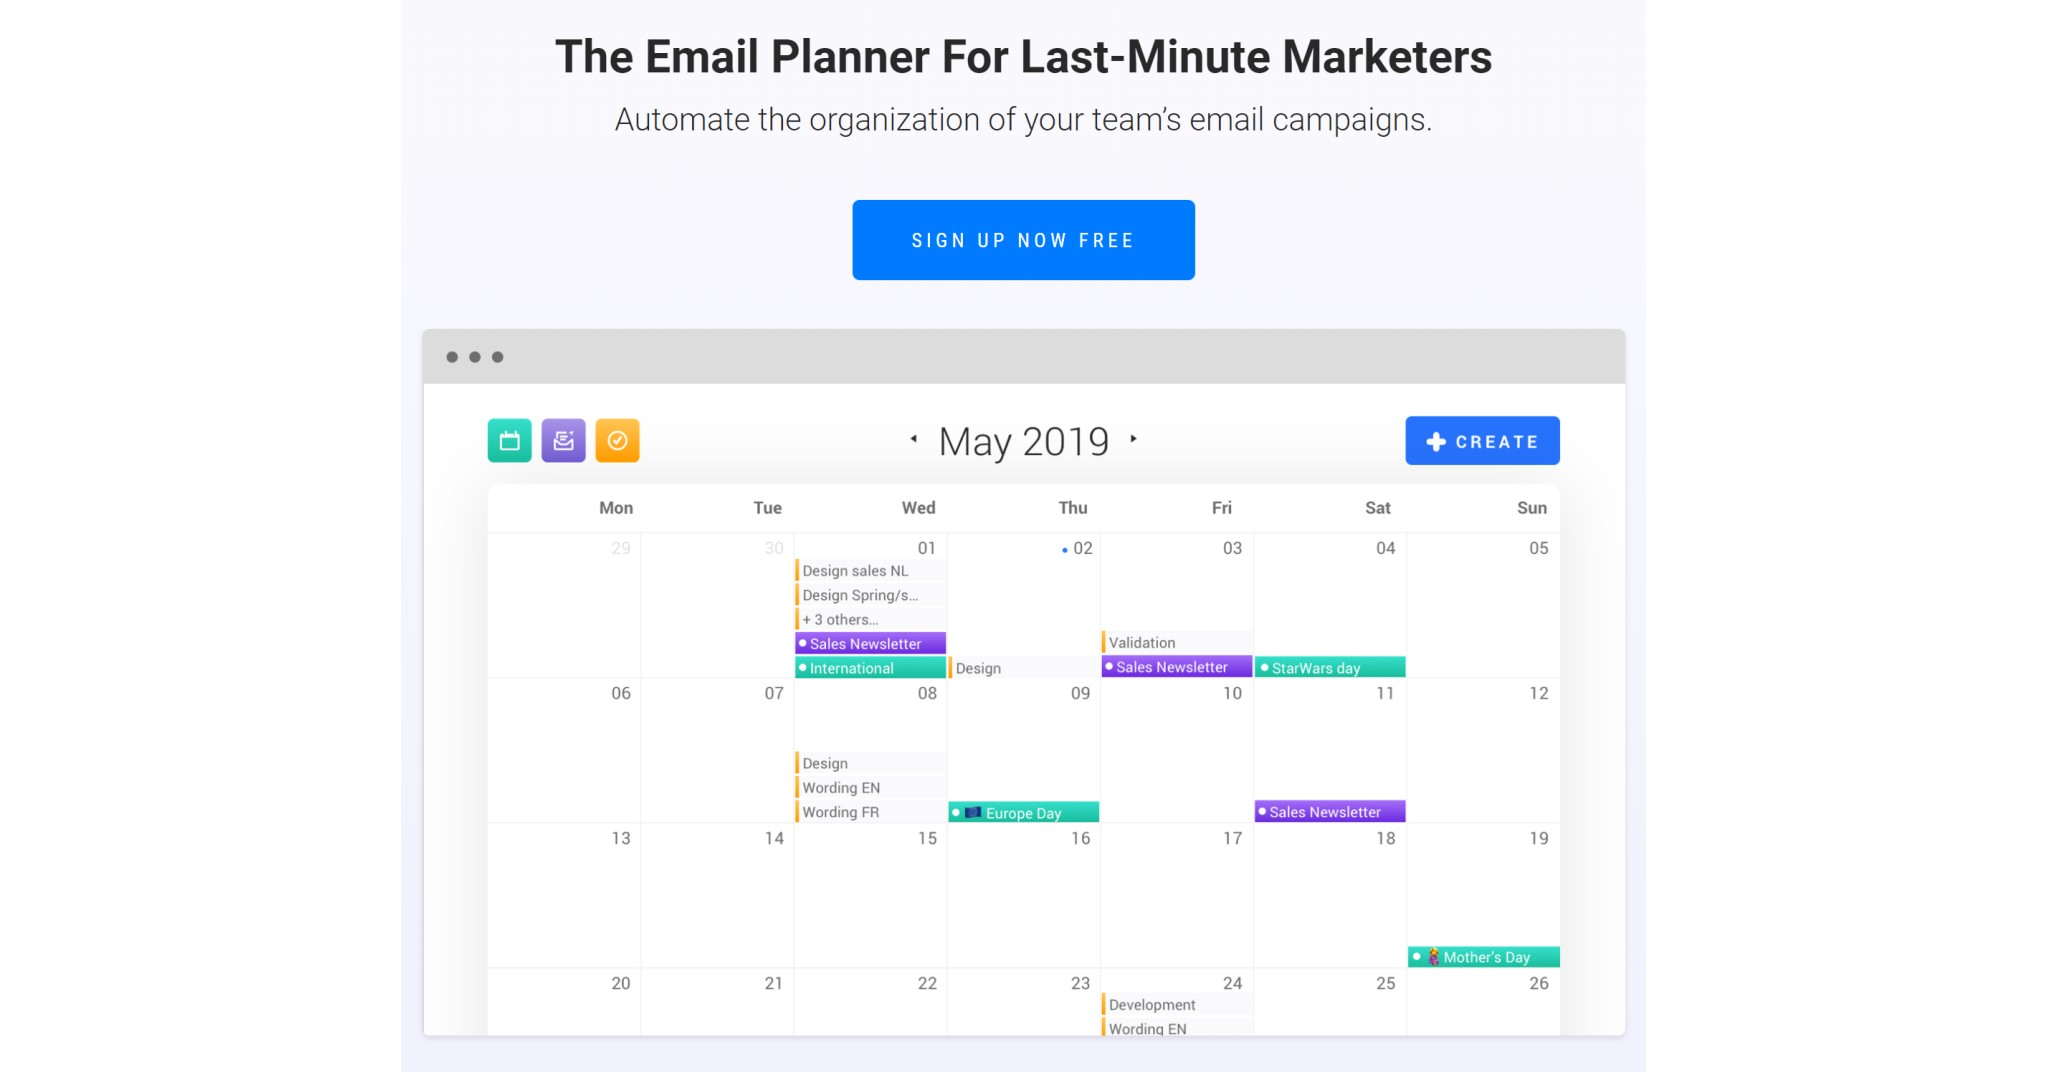 Email Planner